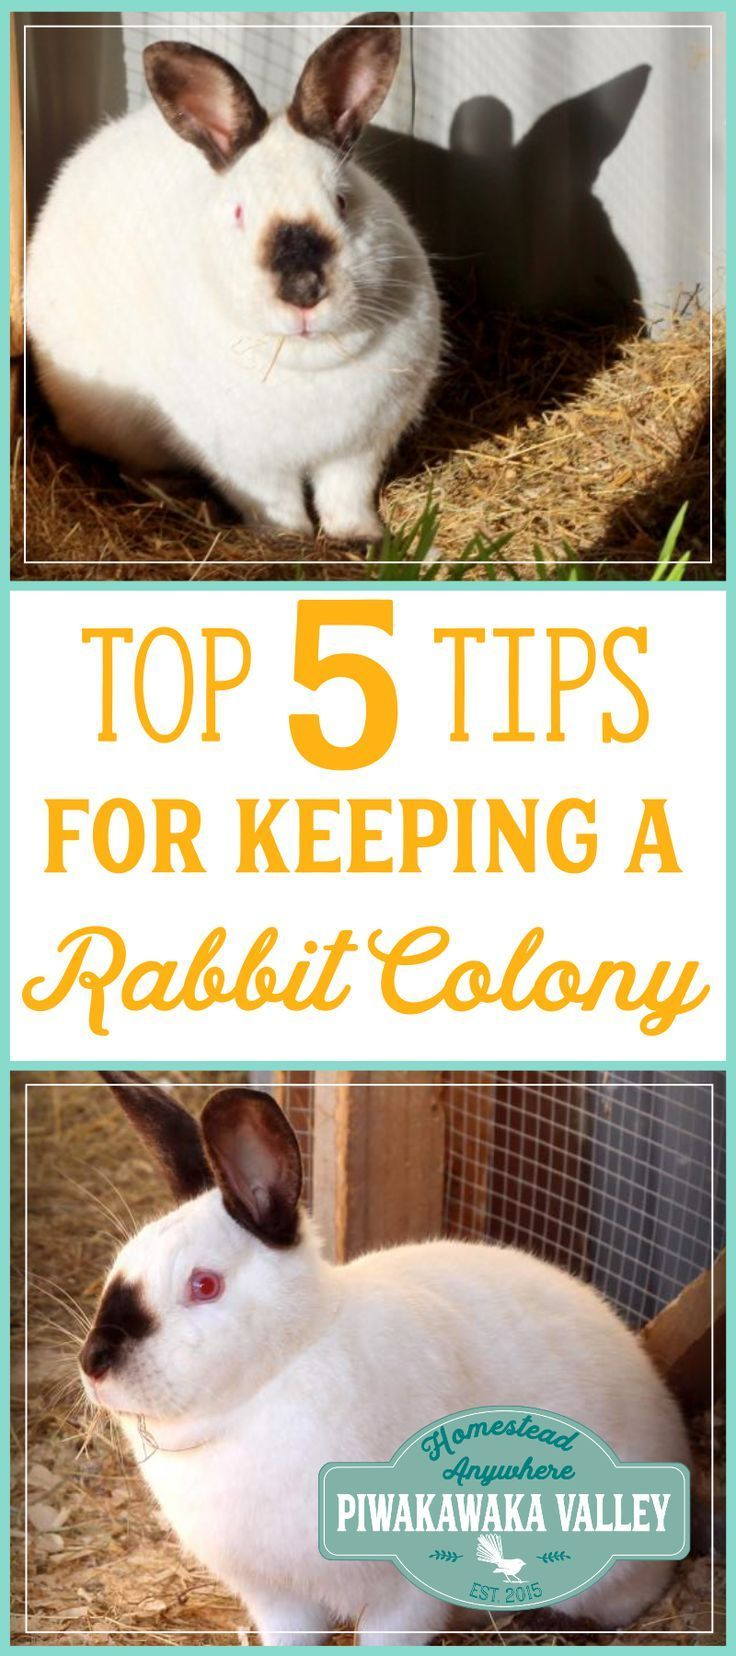 139 best rabbits images on pinterest raising rabbits meat